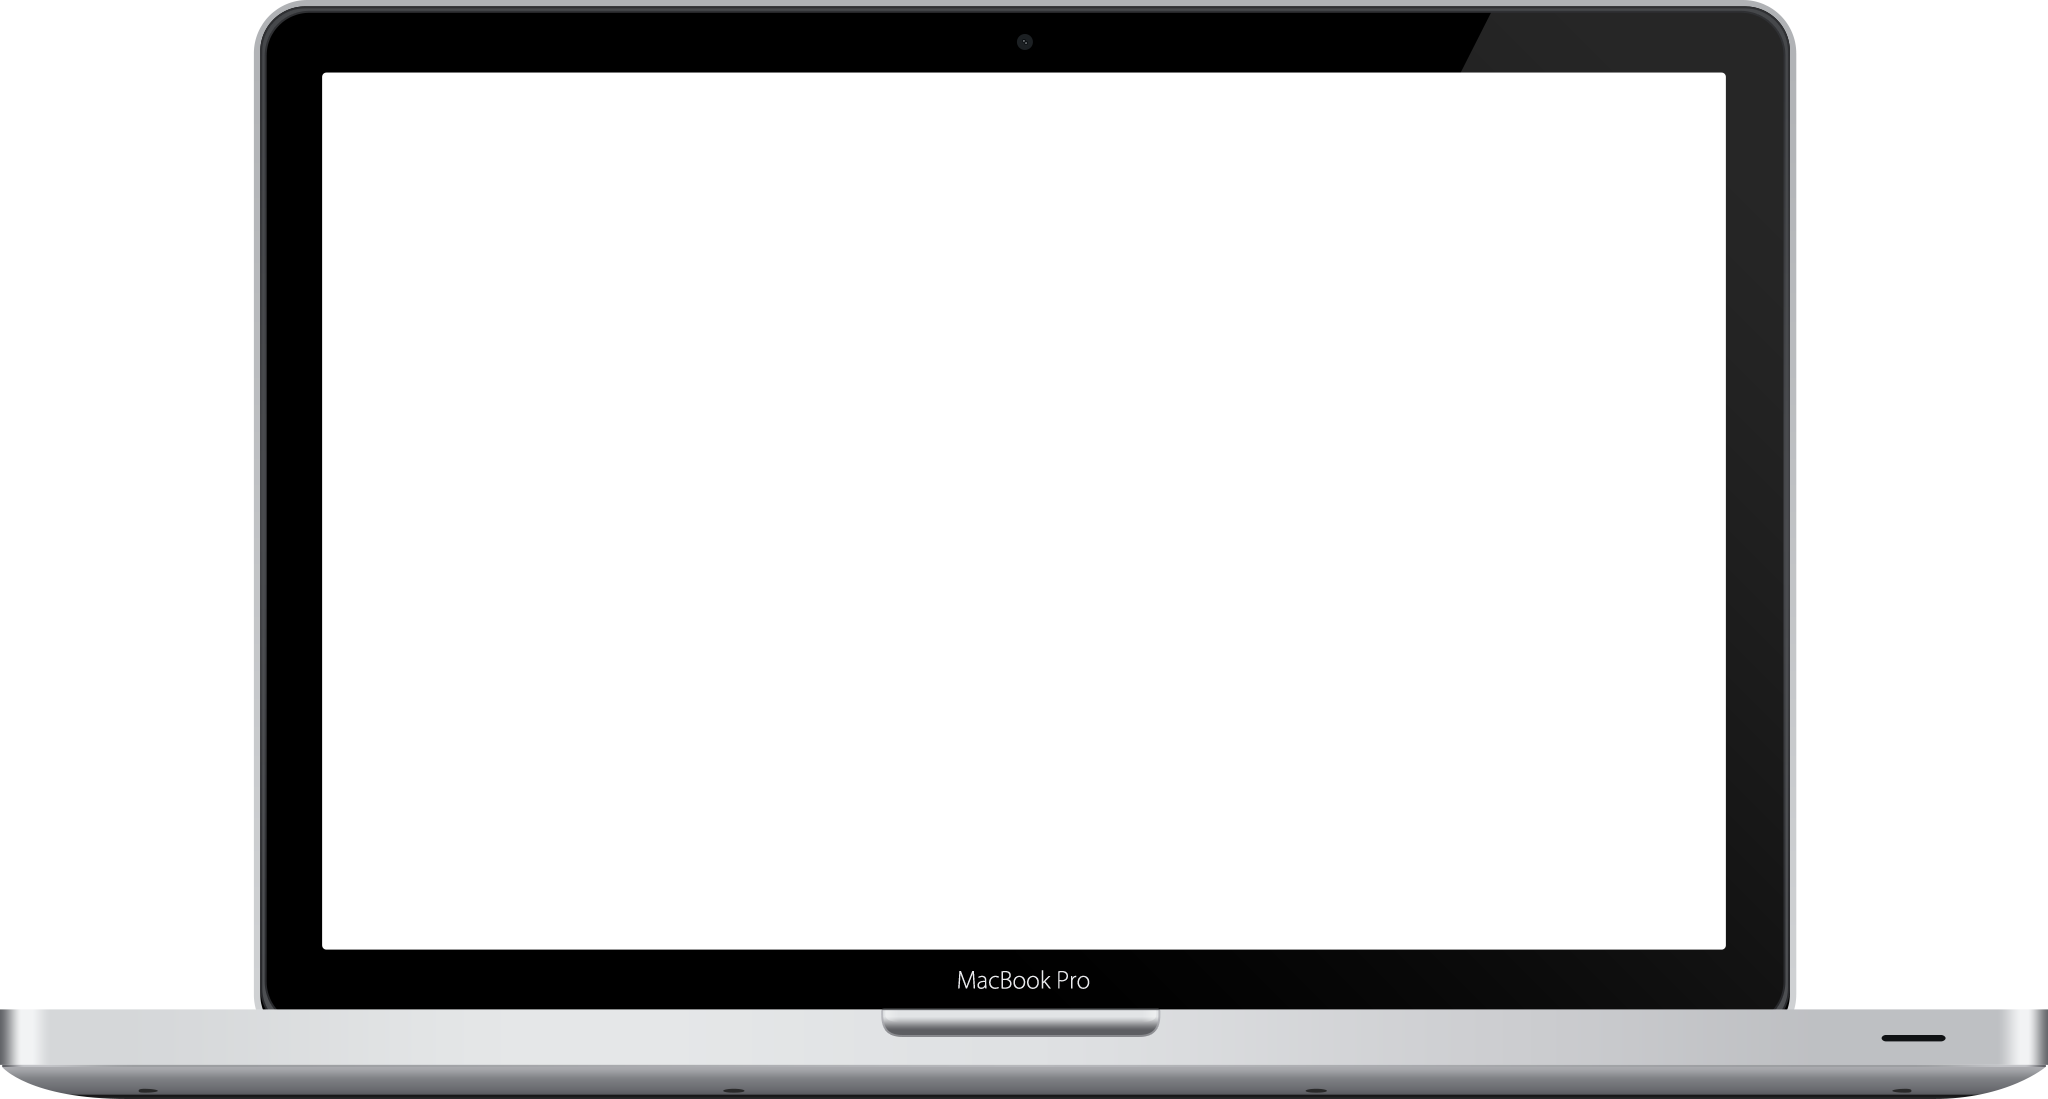 MacBookPro_Large.png